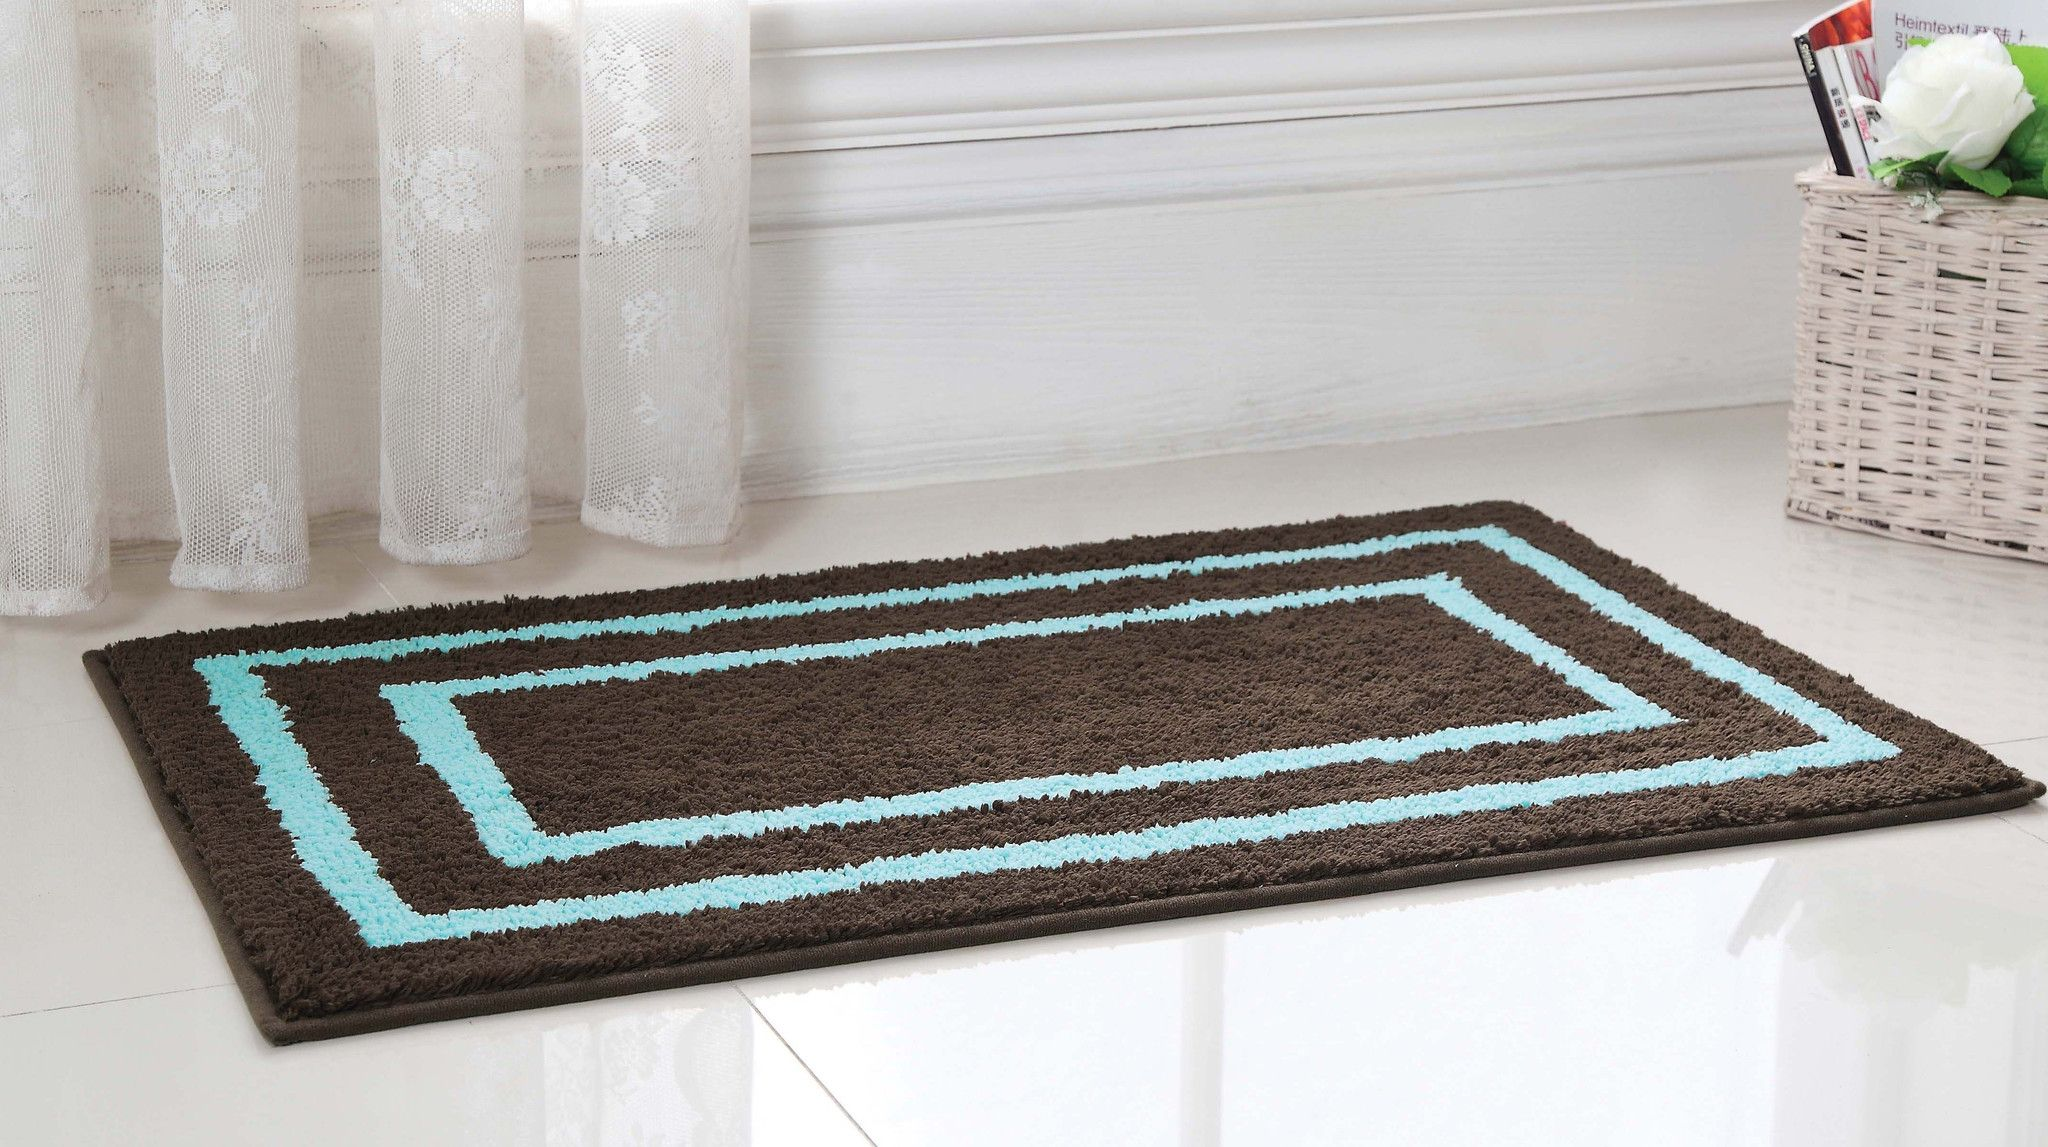 Pin By Product Review On Best Bath Rugs Nautical Bathroom Rugs Blue Bathroom Rugs Bath Rugs